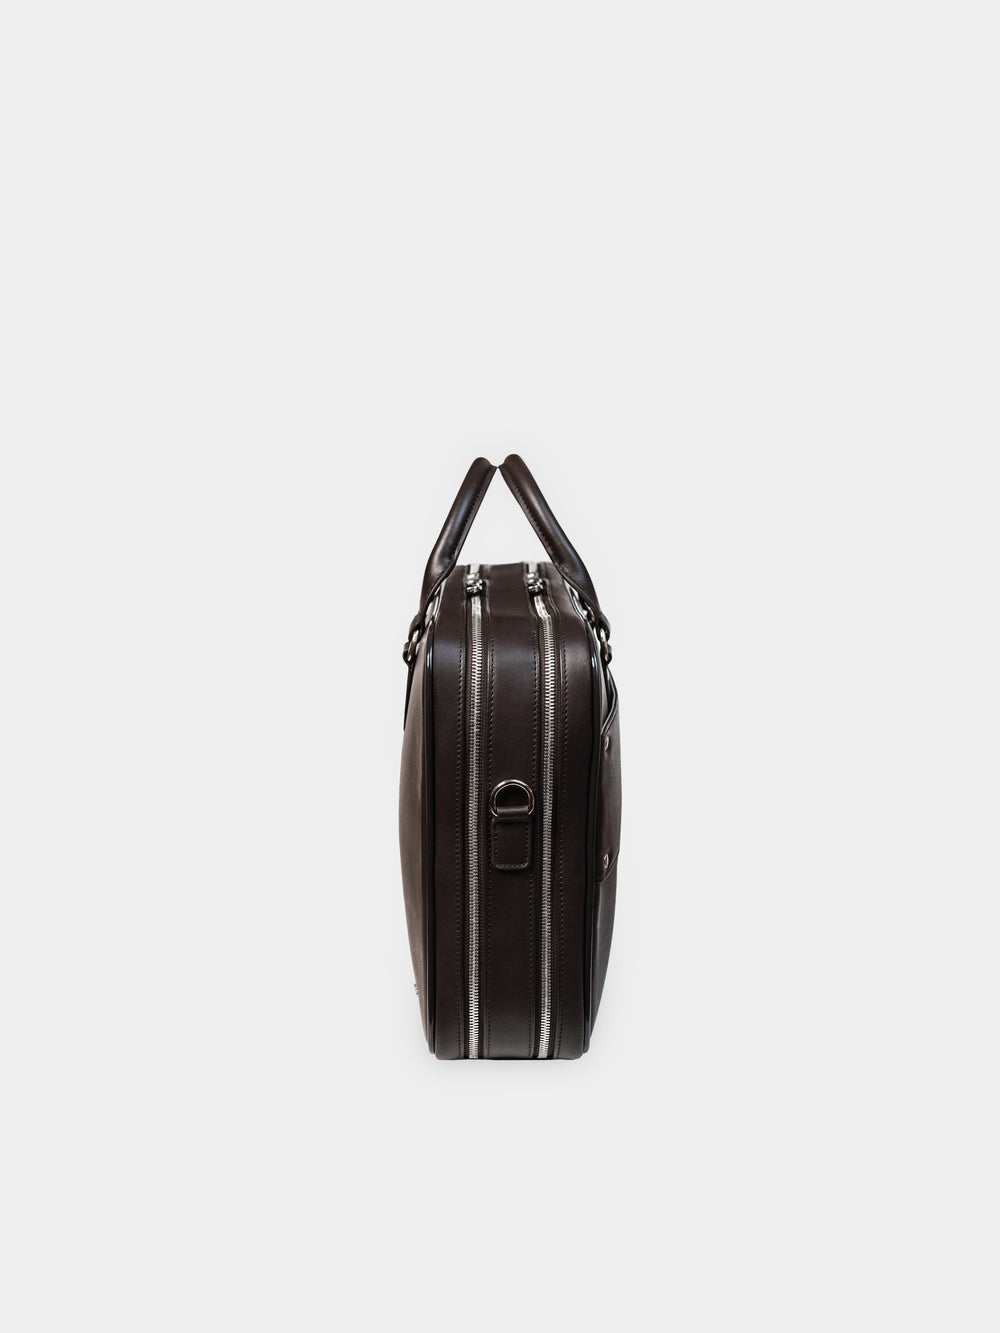 f26 brown leather briefcase